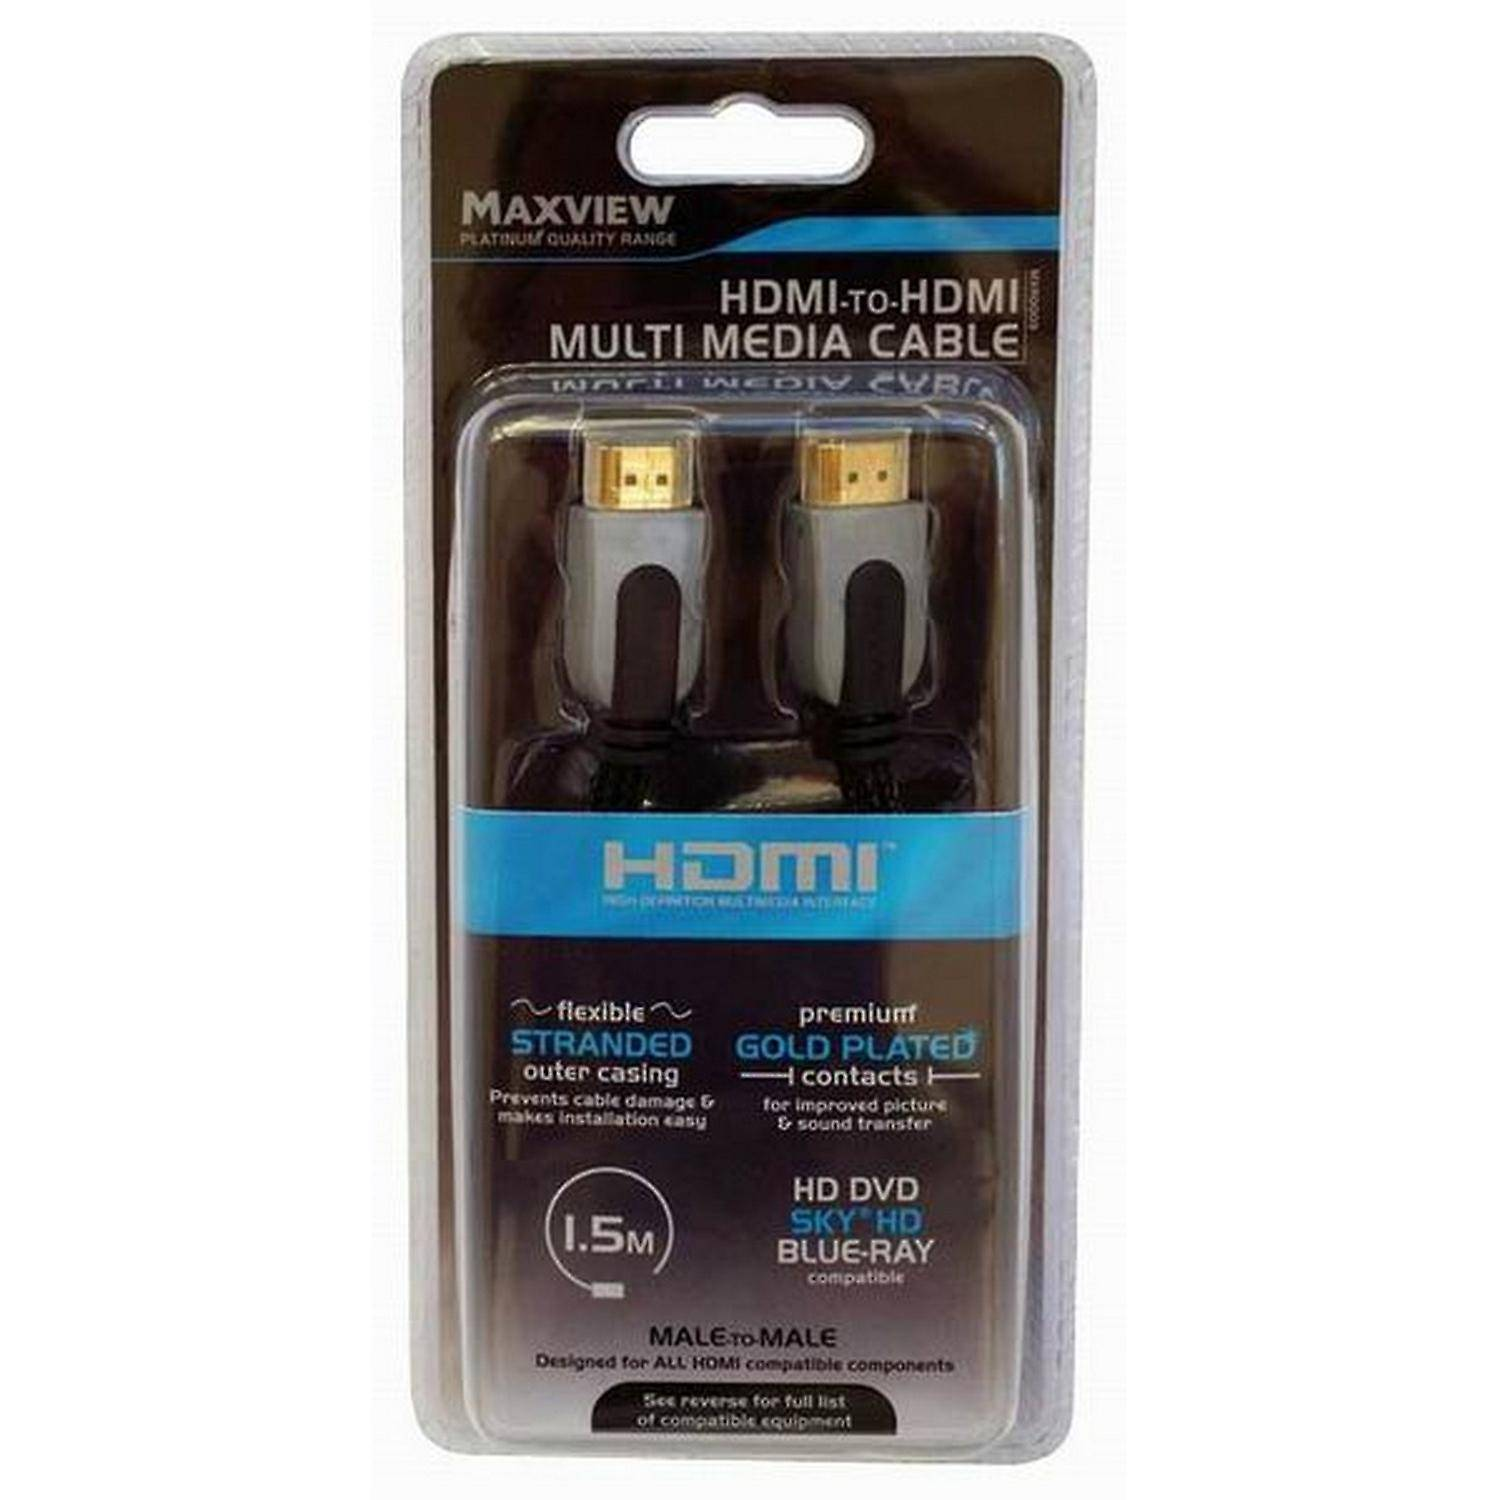 MaxView HDMI till HDMI Multimedia kabel